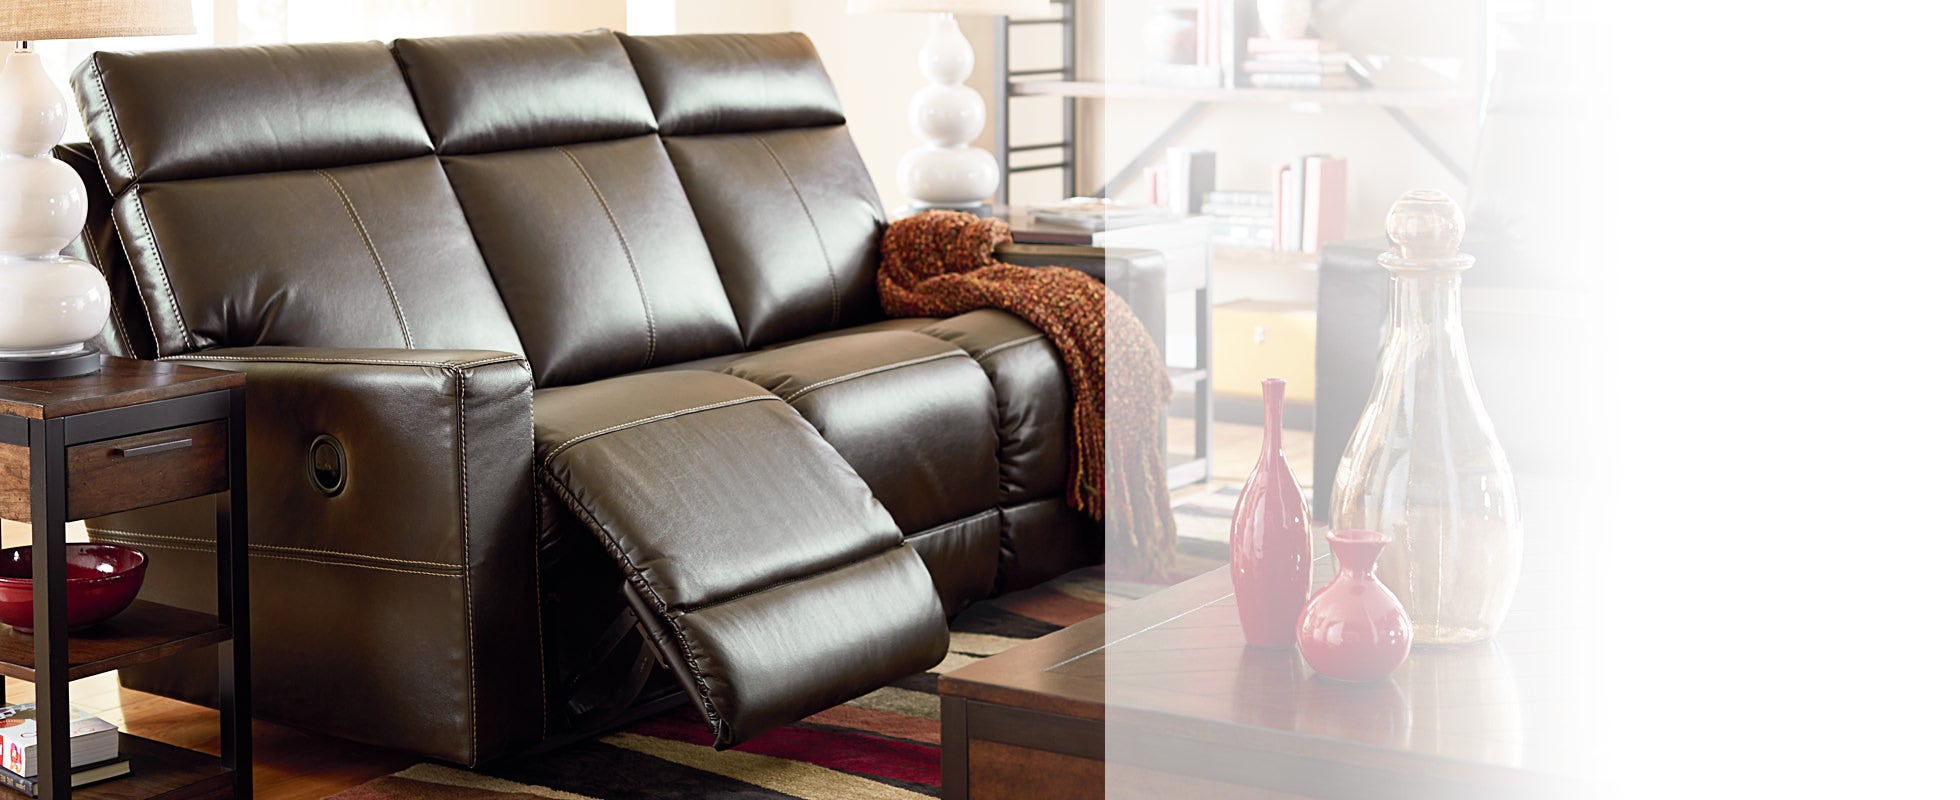 reclining sofas - Reclining Leather Sofa